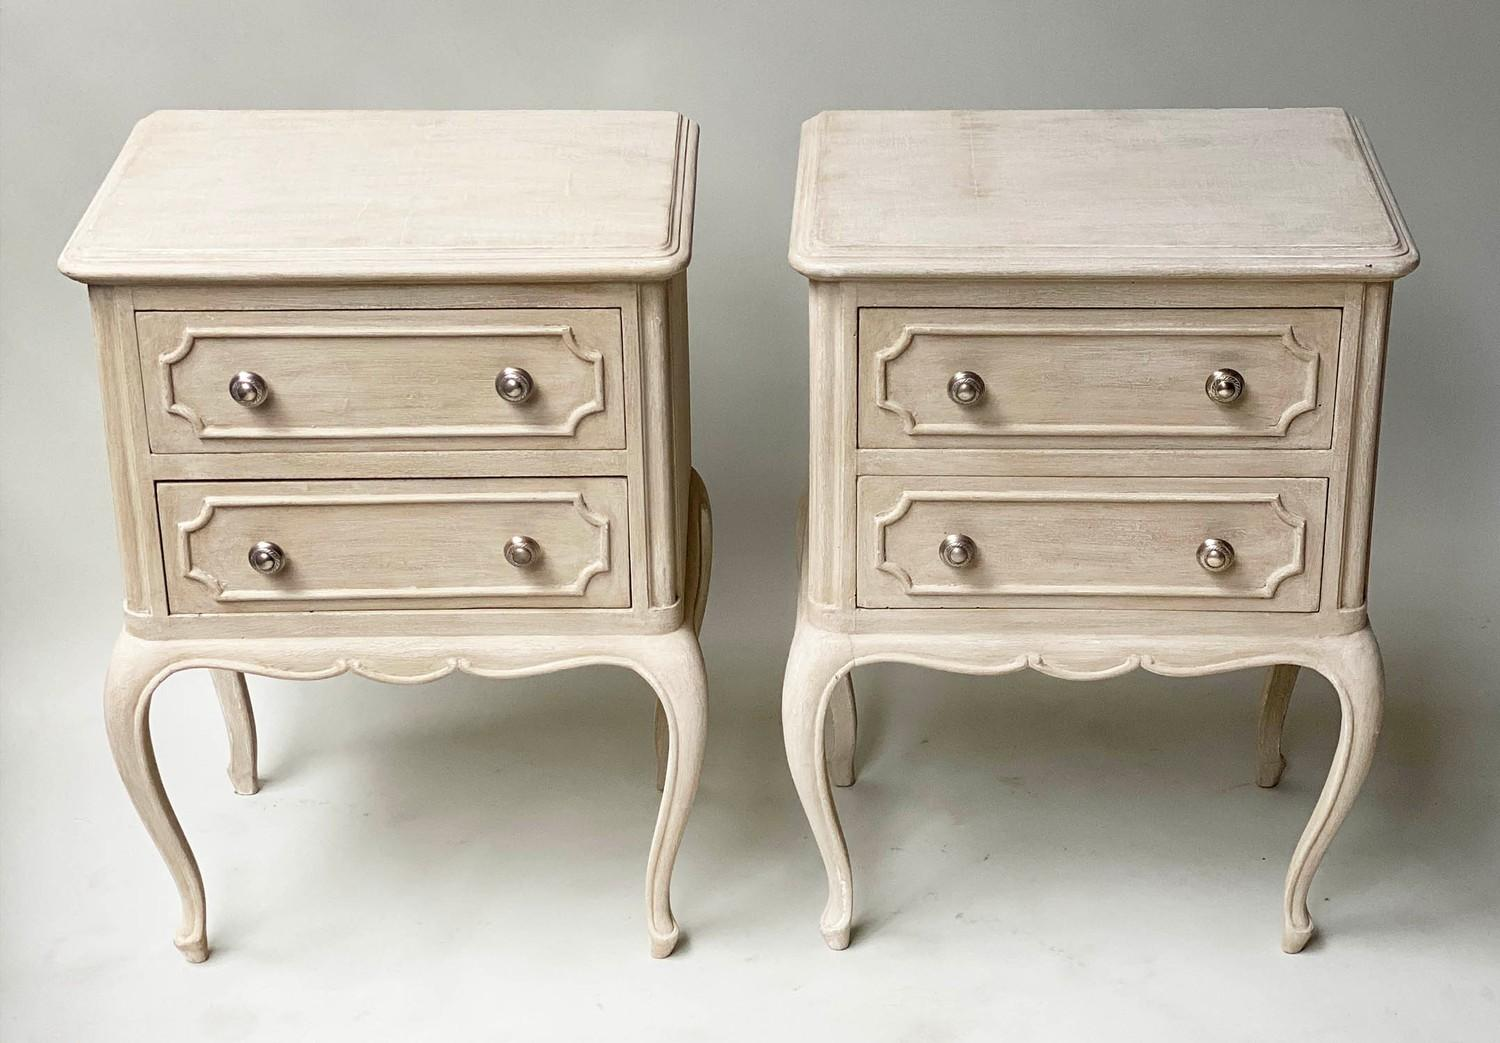 BEDSIDE CHESTS, a pair, French Louis XV design grey painted each with two drawers, 48cm x 36cm x